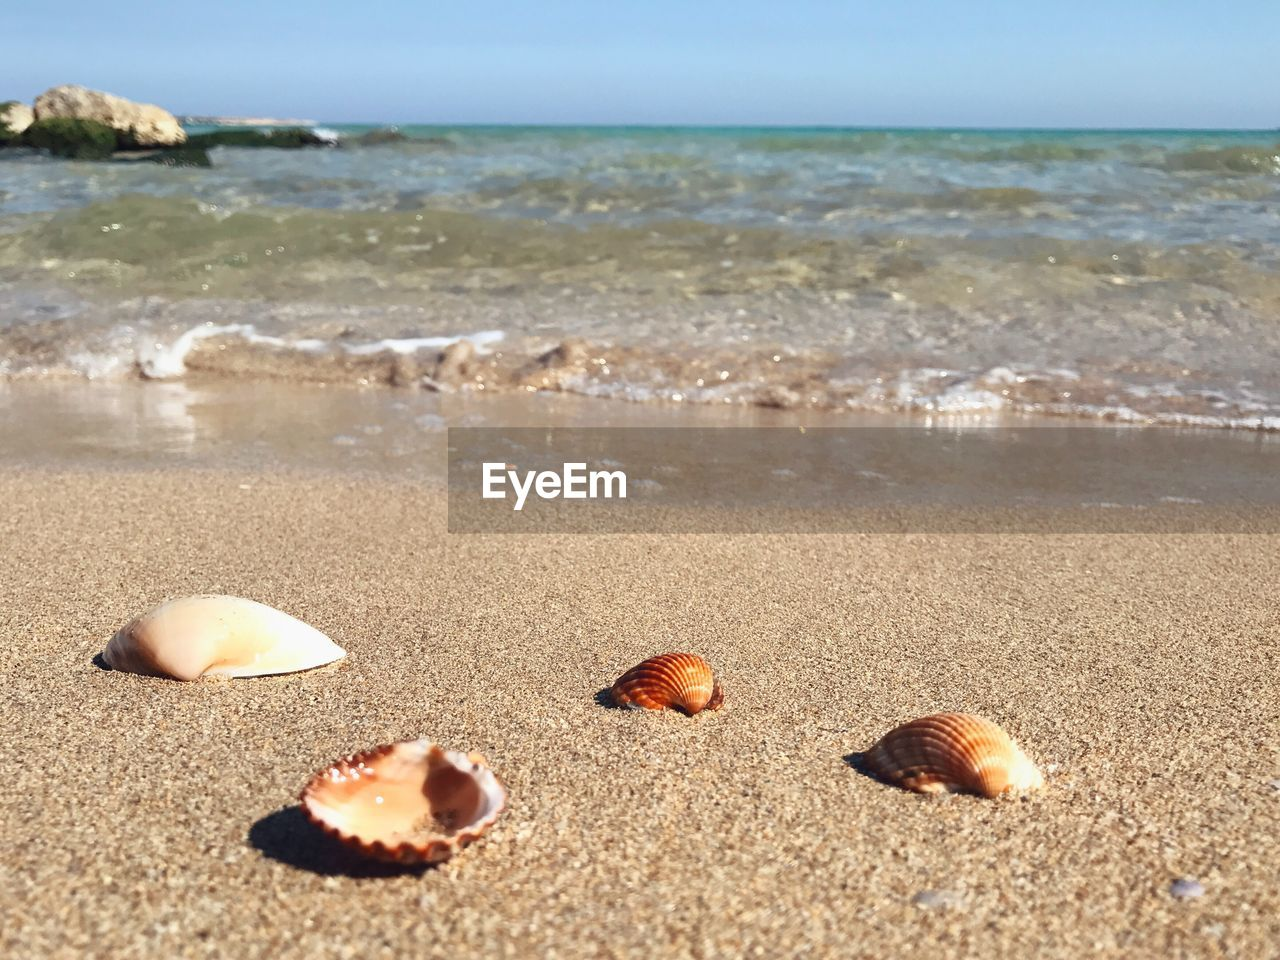 beach, sea, sand, shore, nature, horizon over water, beauty in nature, day, outdoors, water, tranquility, seashell, tranquil scene, scenics, no people, pebble beach, close-up, sky